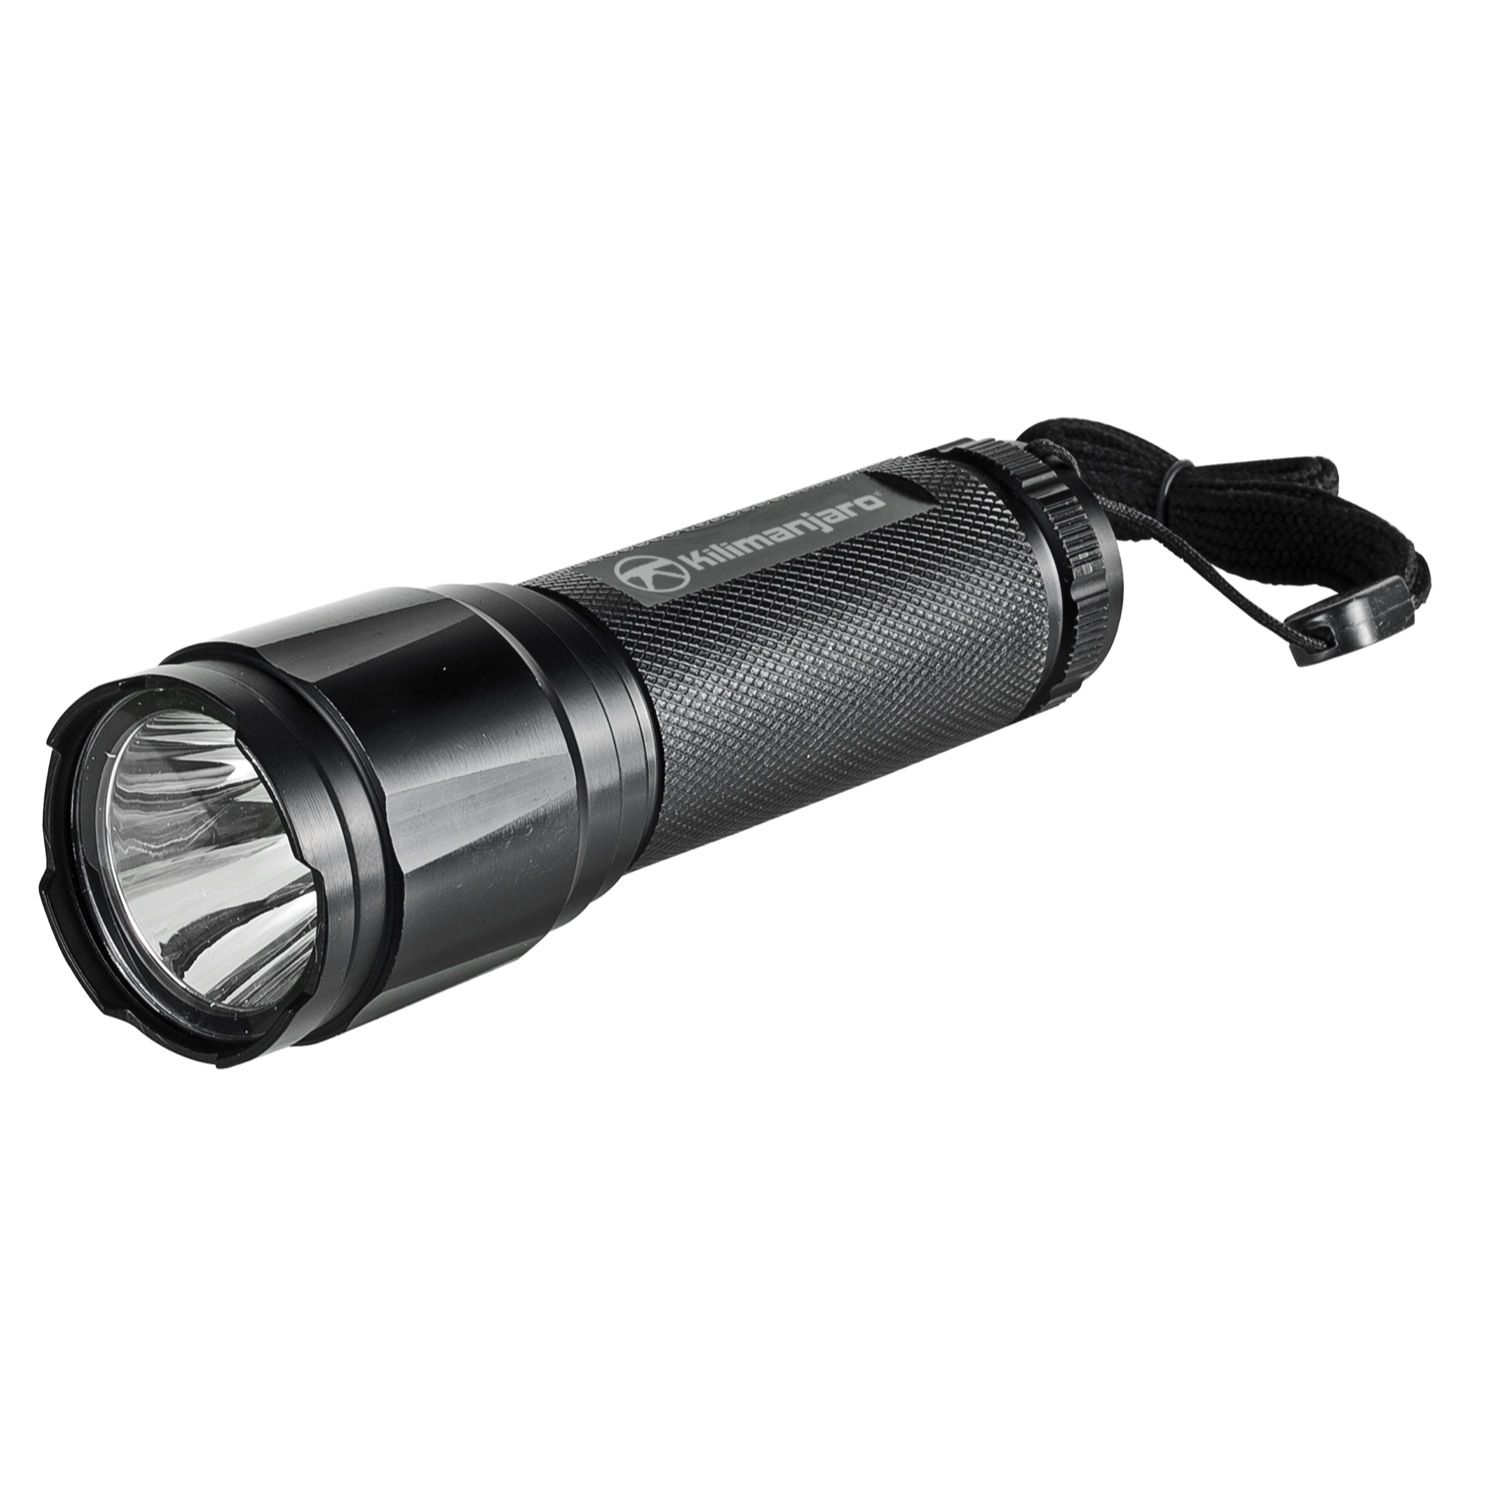 KILMAN Kilimanjaro LED Tactical Flashlight